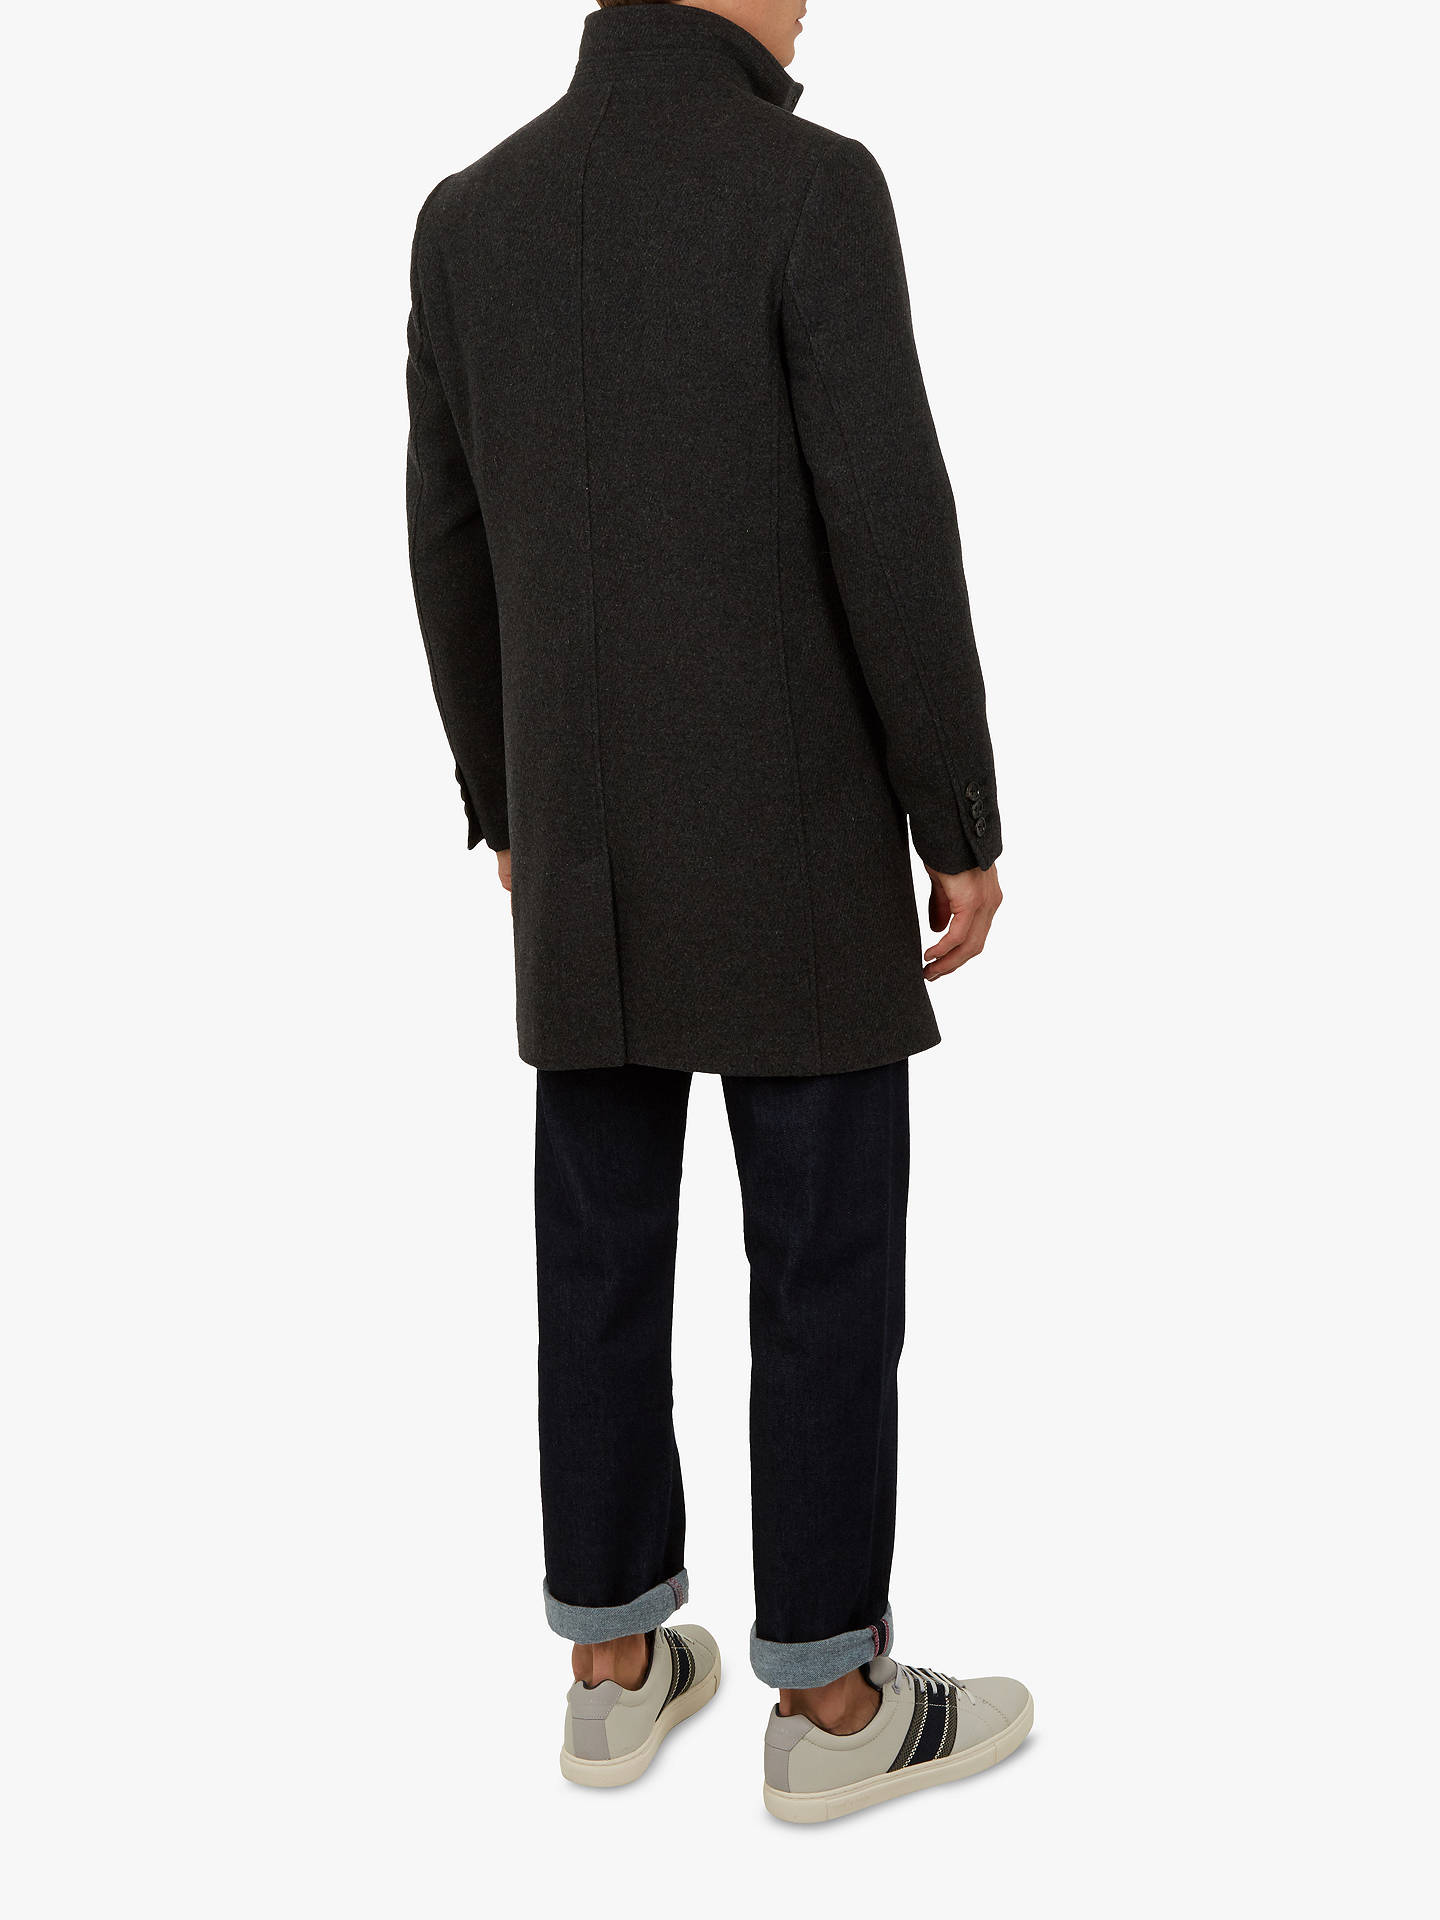 BuyTed Baker Cheago Funnel Neck Coat, Grey, XXL Online at johnlewis.com